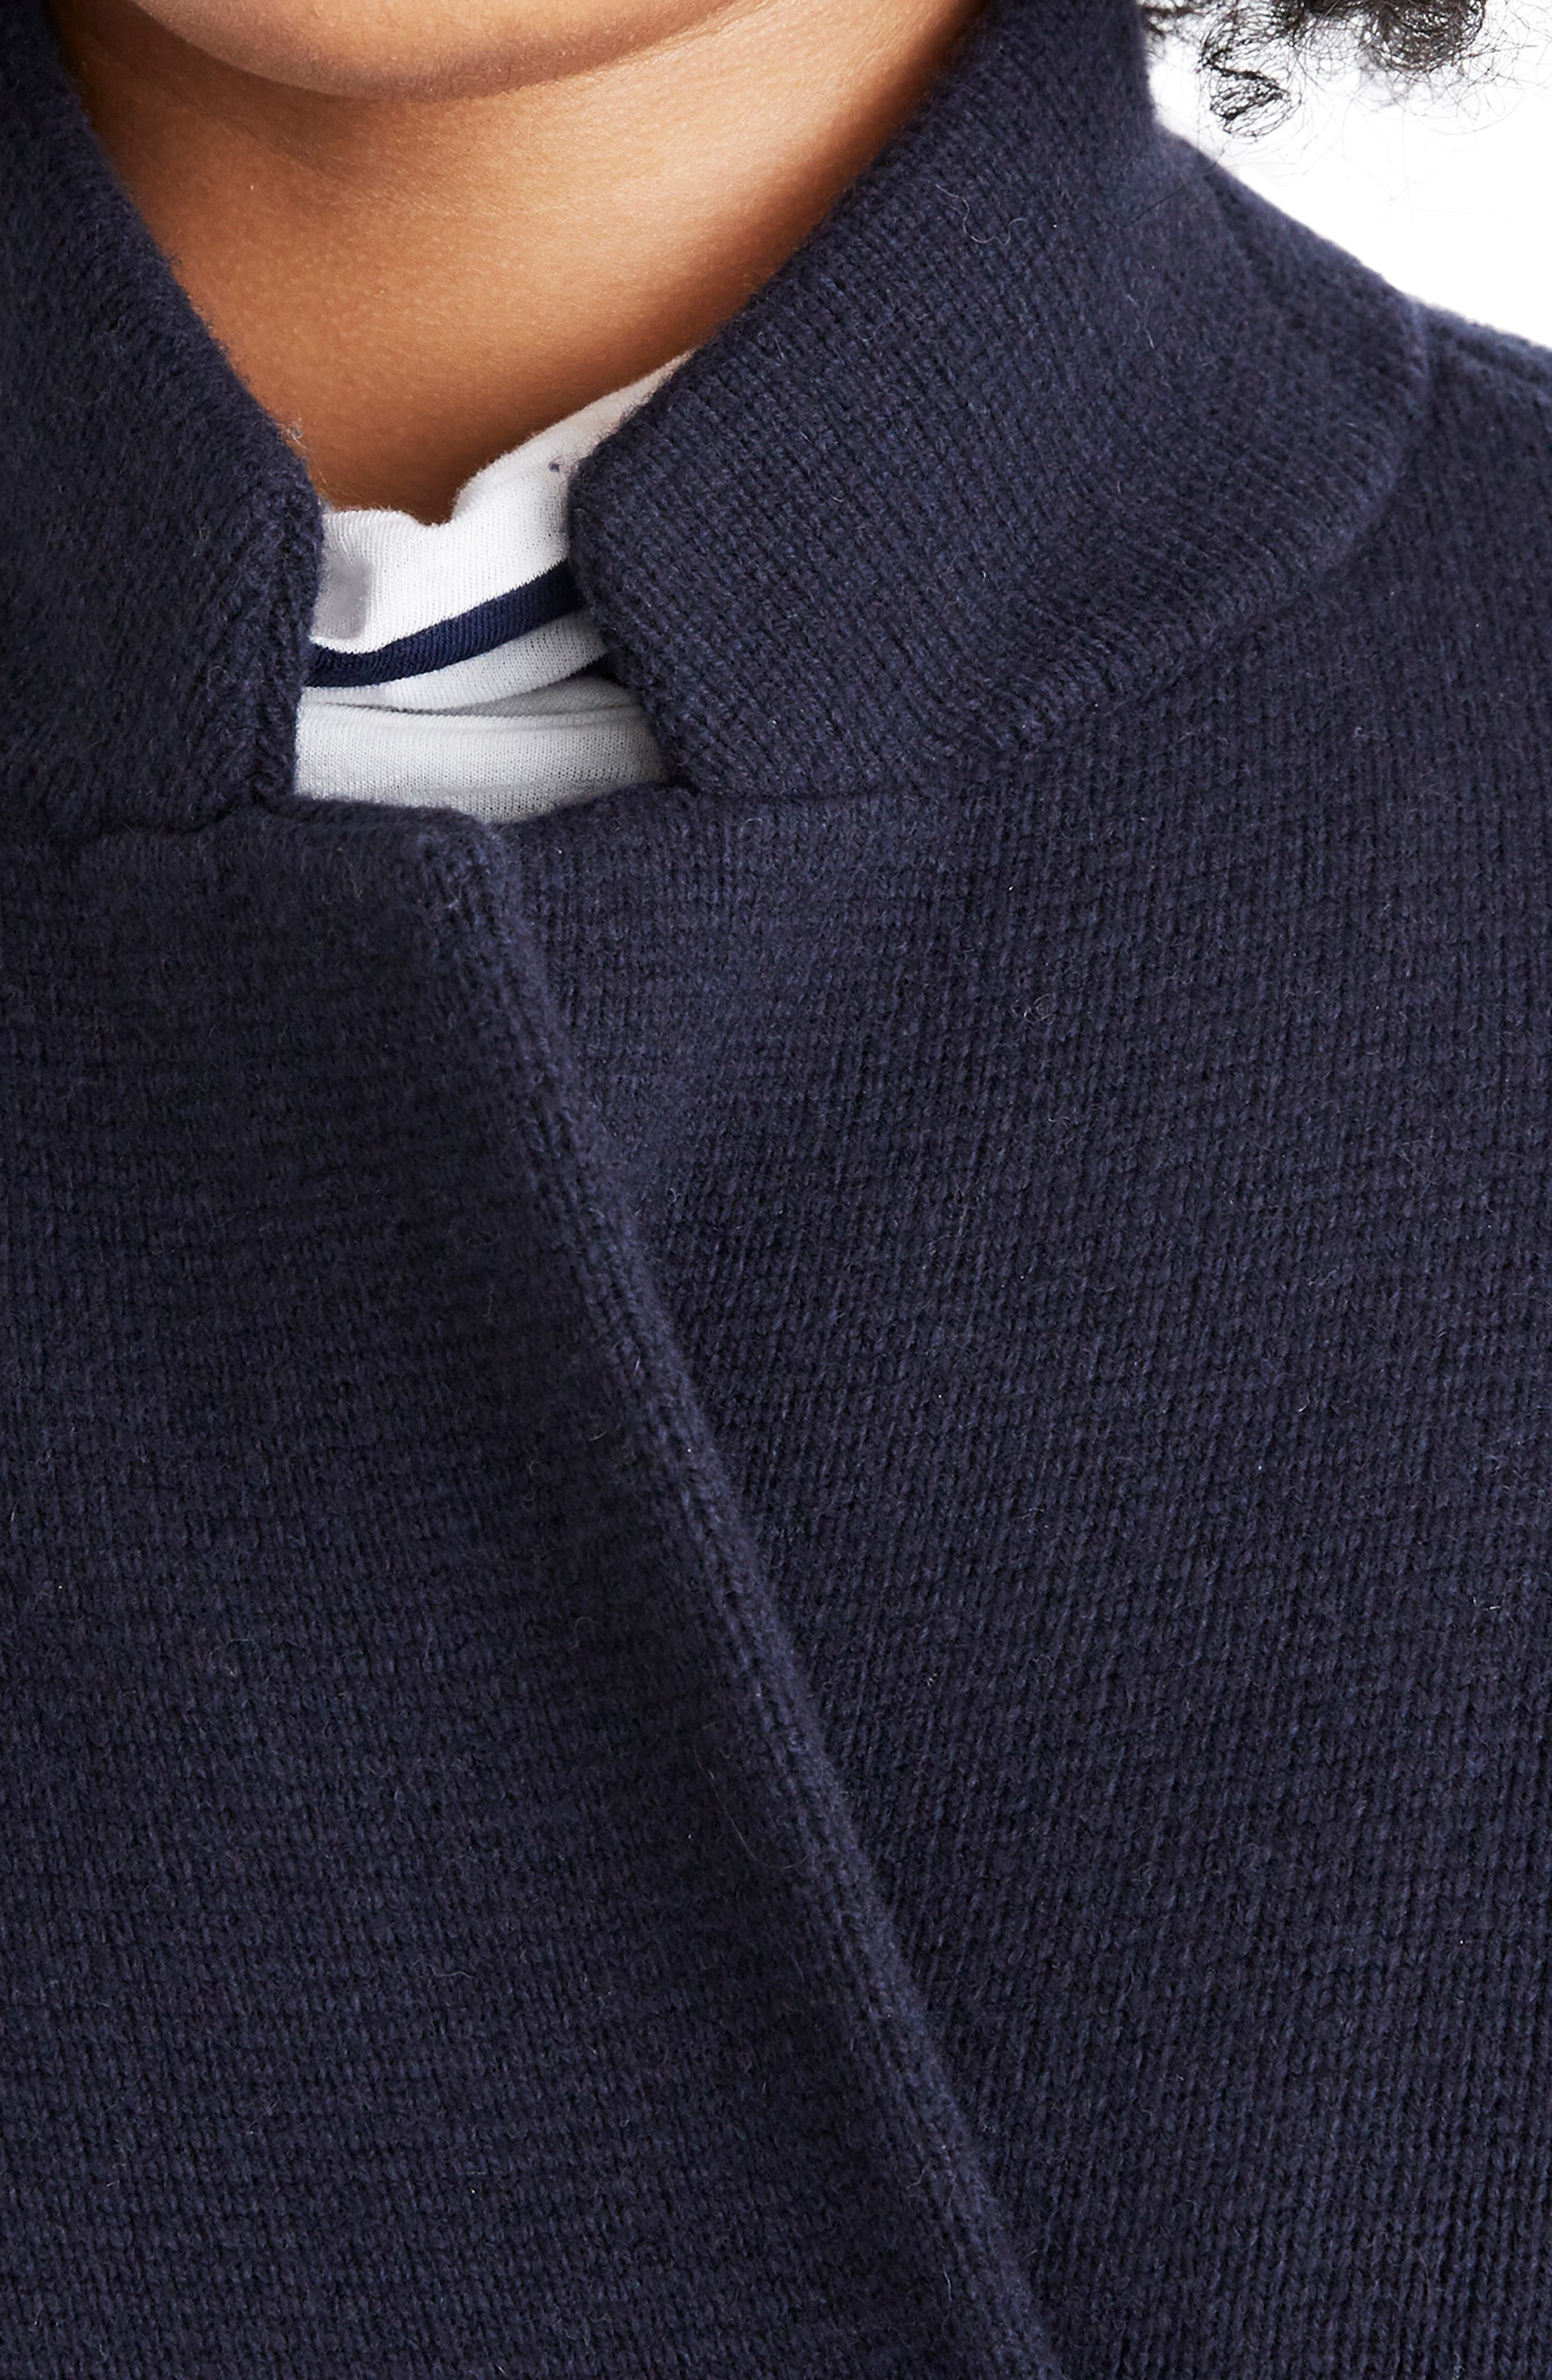 Double Breasted Sweater Coat,                             Alternate thumbnail 7, color,                             400